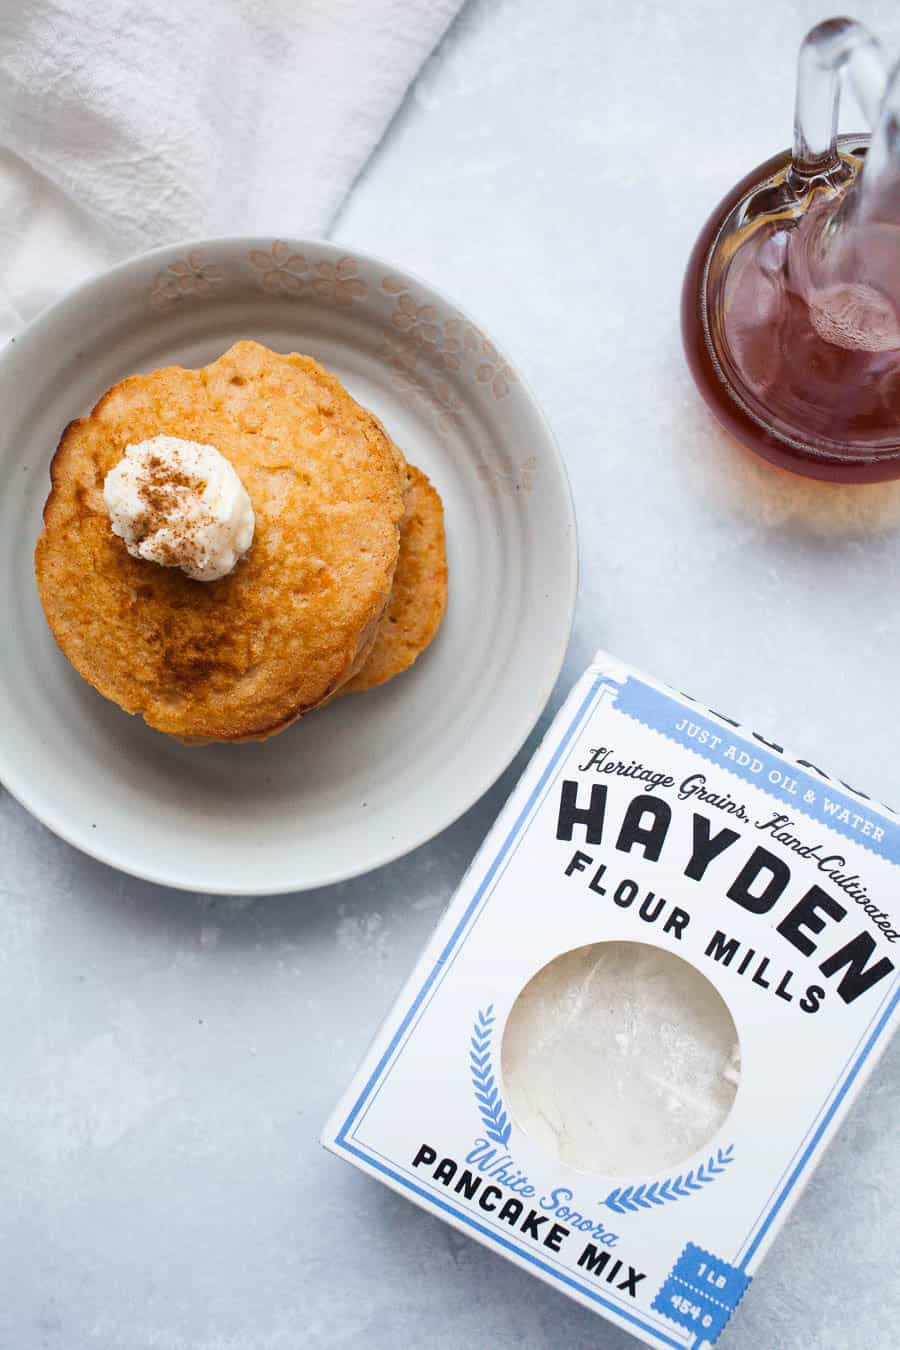 If you love breakfast, you'll love these sweet potato pancakes with whipped maple butter! They're the perfect switch from regular pancakes and have a great sweet potato flavor. Whether or not it's the fall season, these sweet potato pancakes are definitely a must!